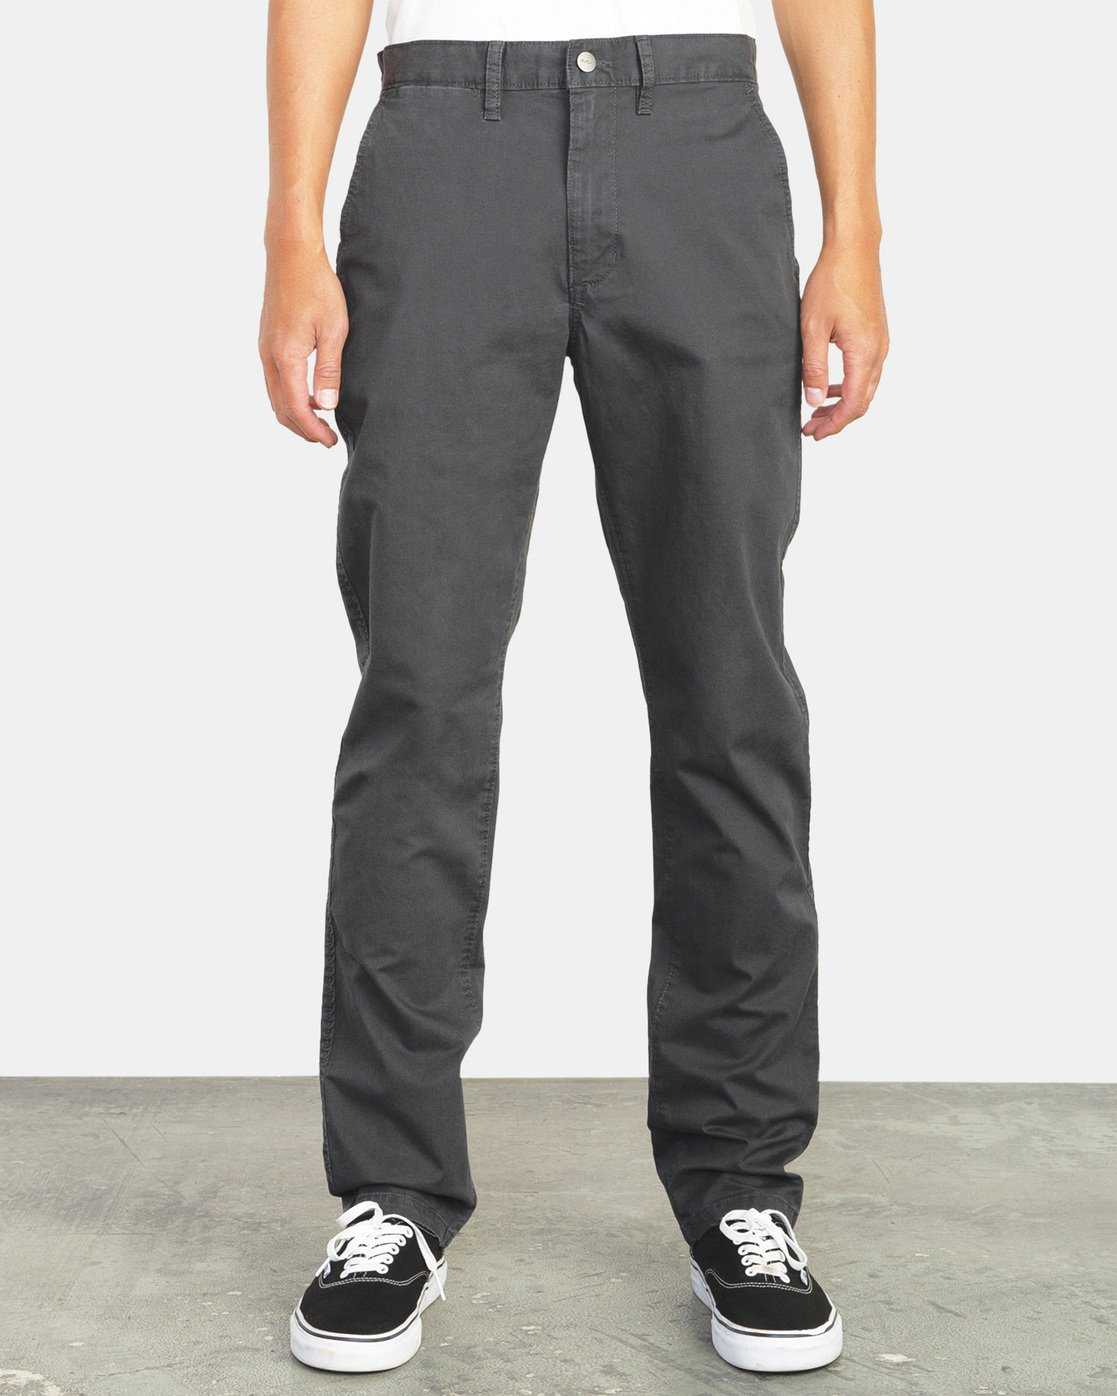 0 Daggers Slim-Straight Chino Pants Grey M309QRDC RVCA